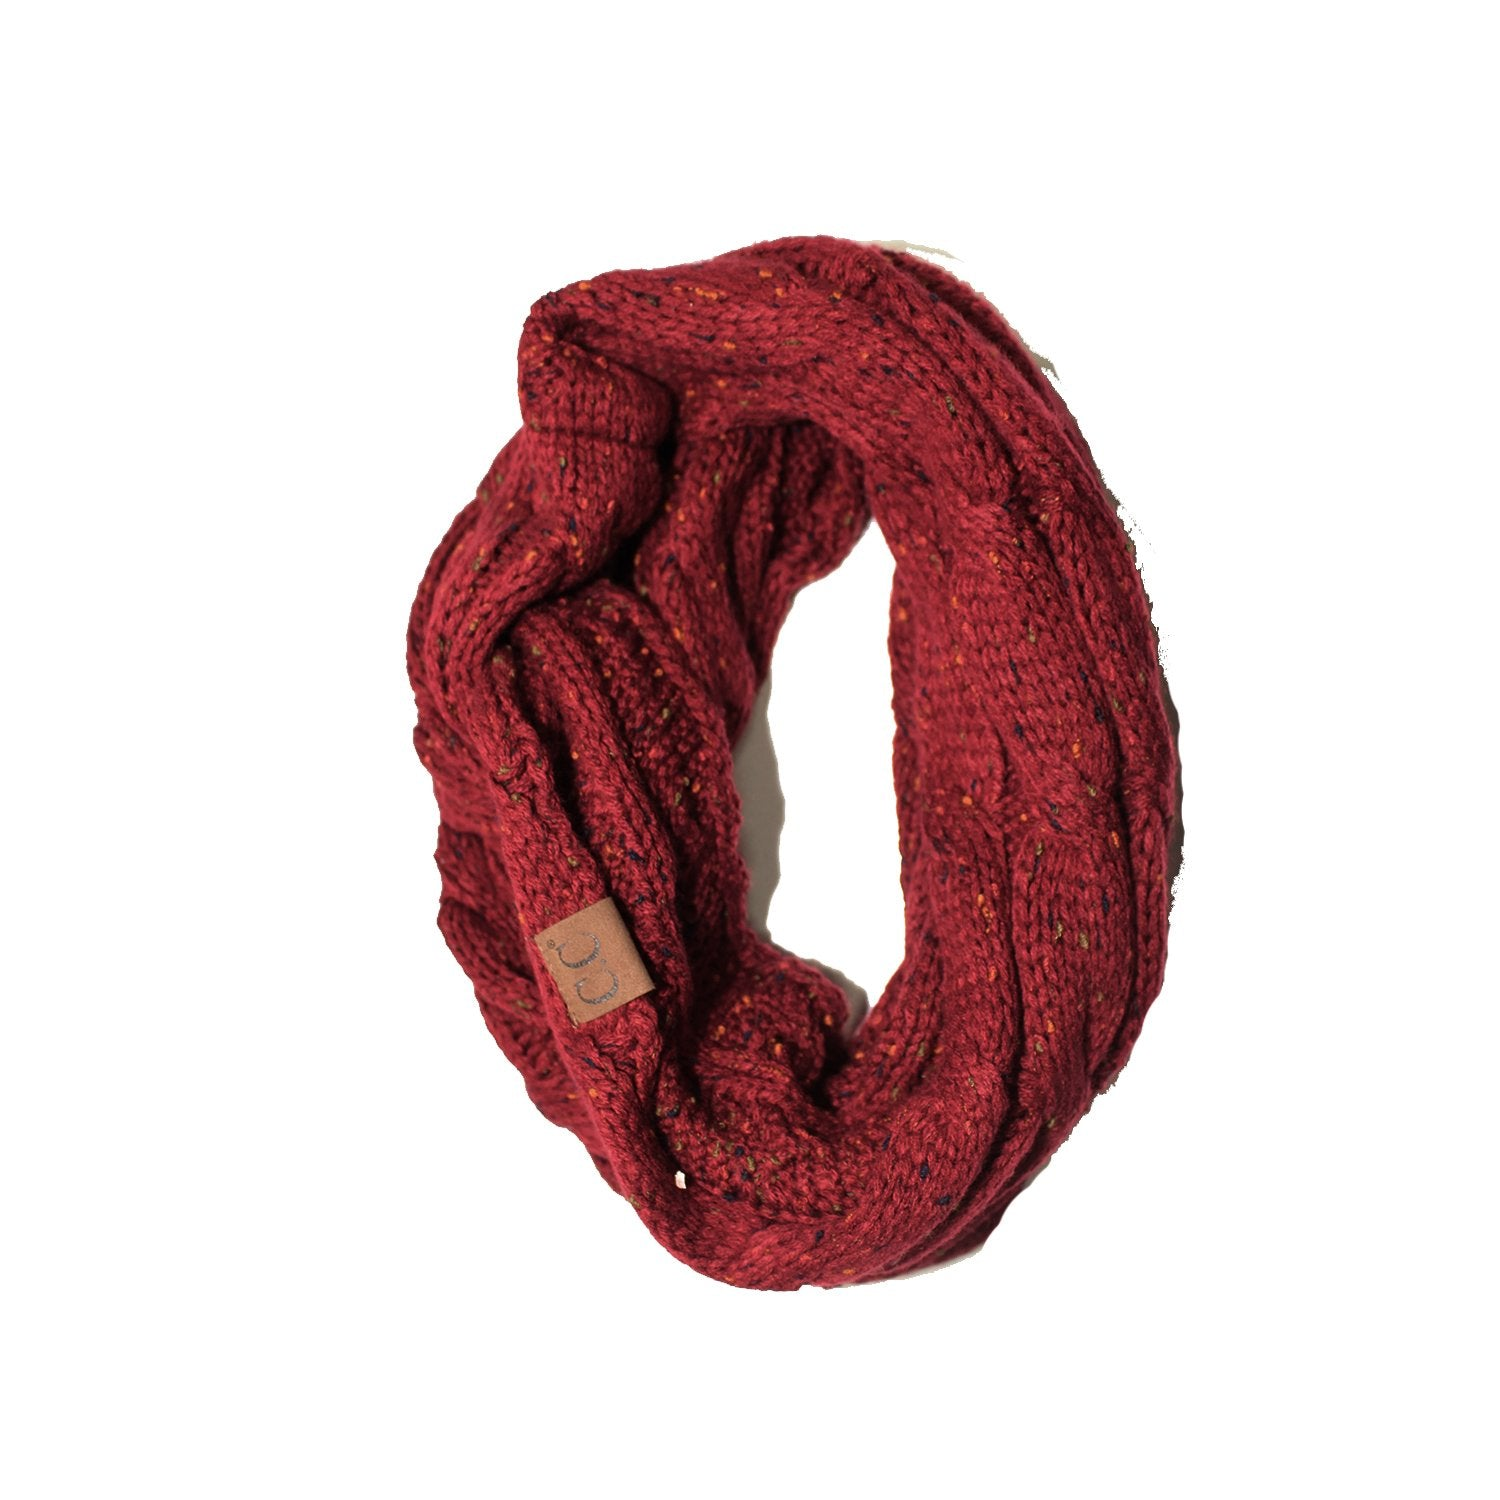 SF-33-Burgundy Speckled Infinity Scarf